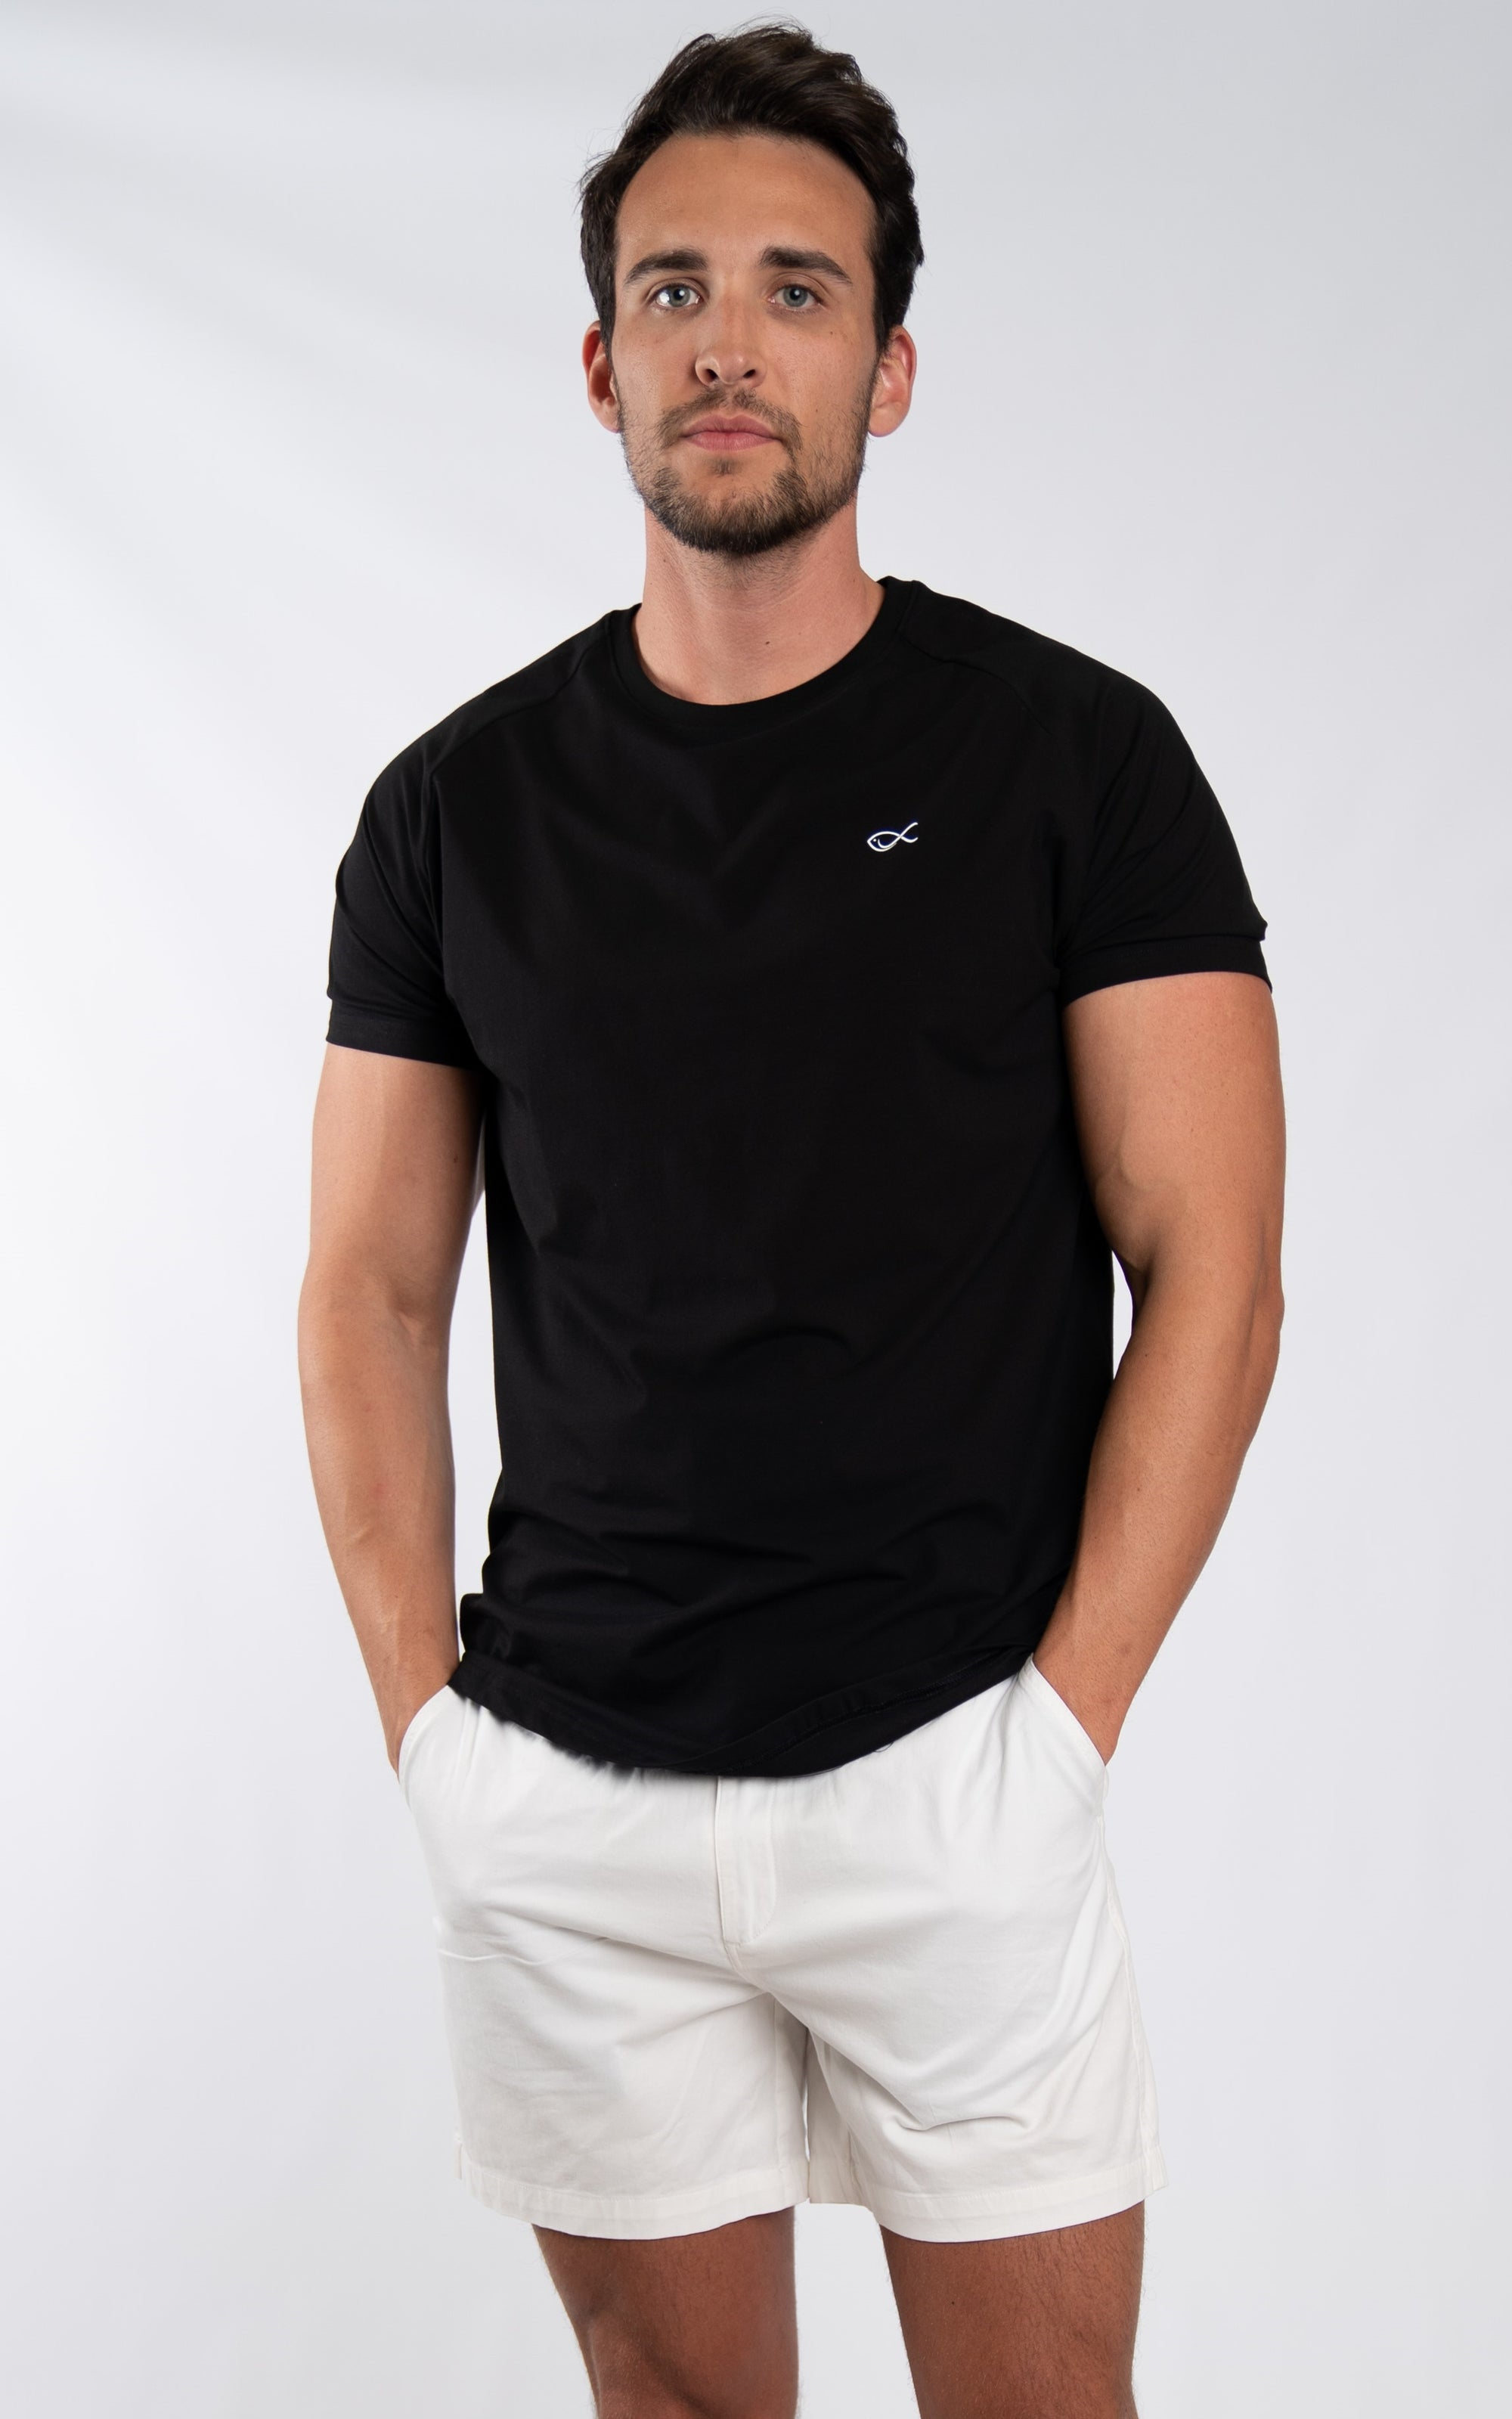 Men's Comfort Tee in Black - Southern Athletica